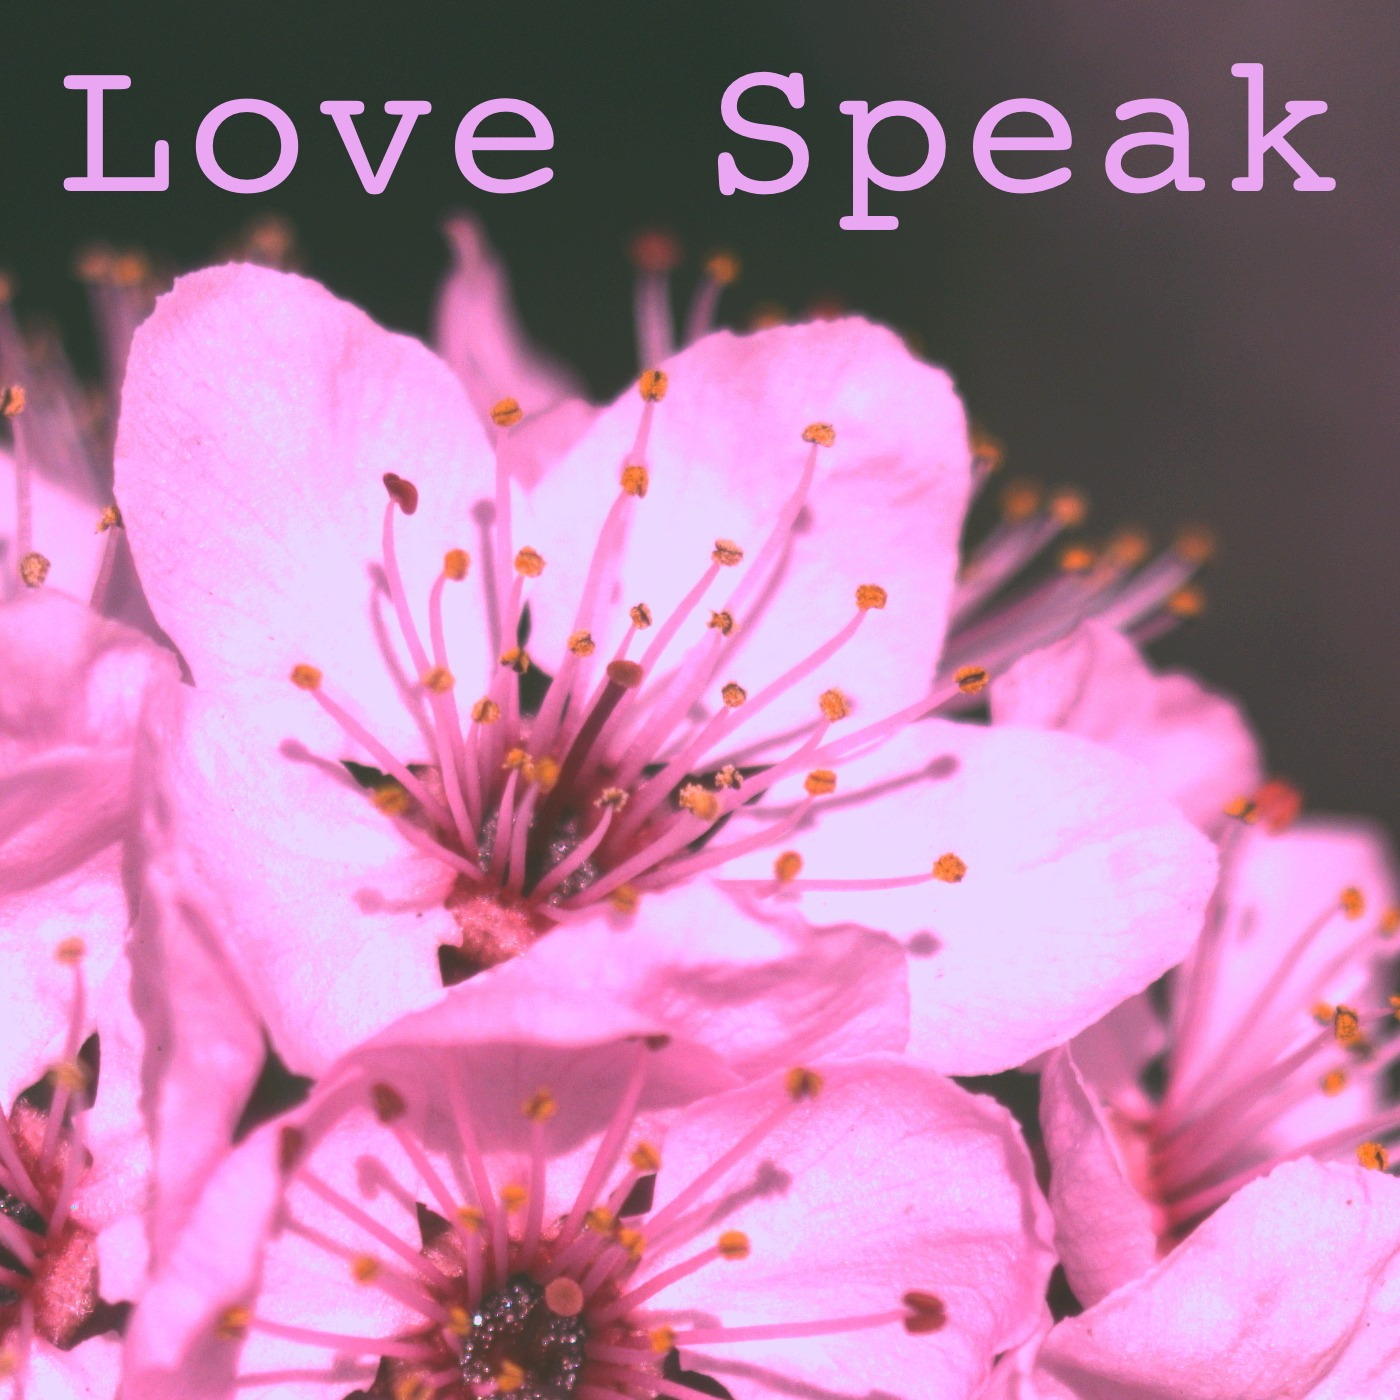 Love Speak